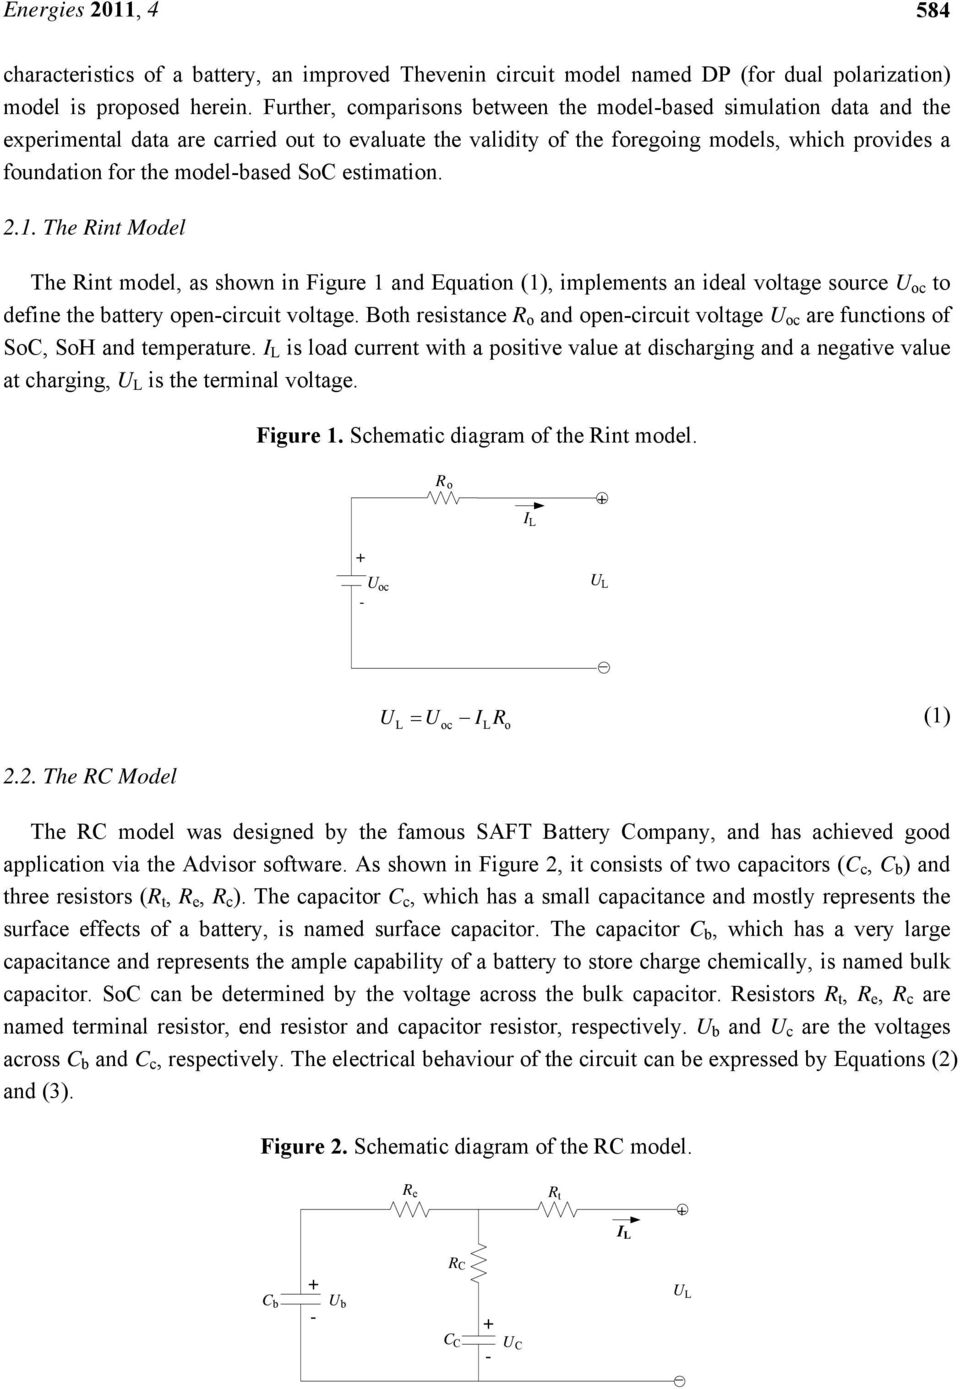 Evaluation Of Lithium Ion Battery Equivalent Circuit Models For Open Diagram Model Based Soc Estimation 21 The Rint As